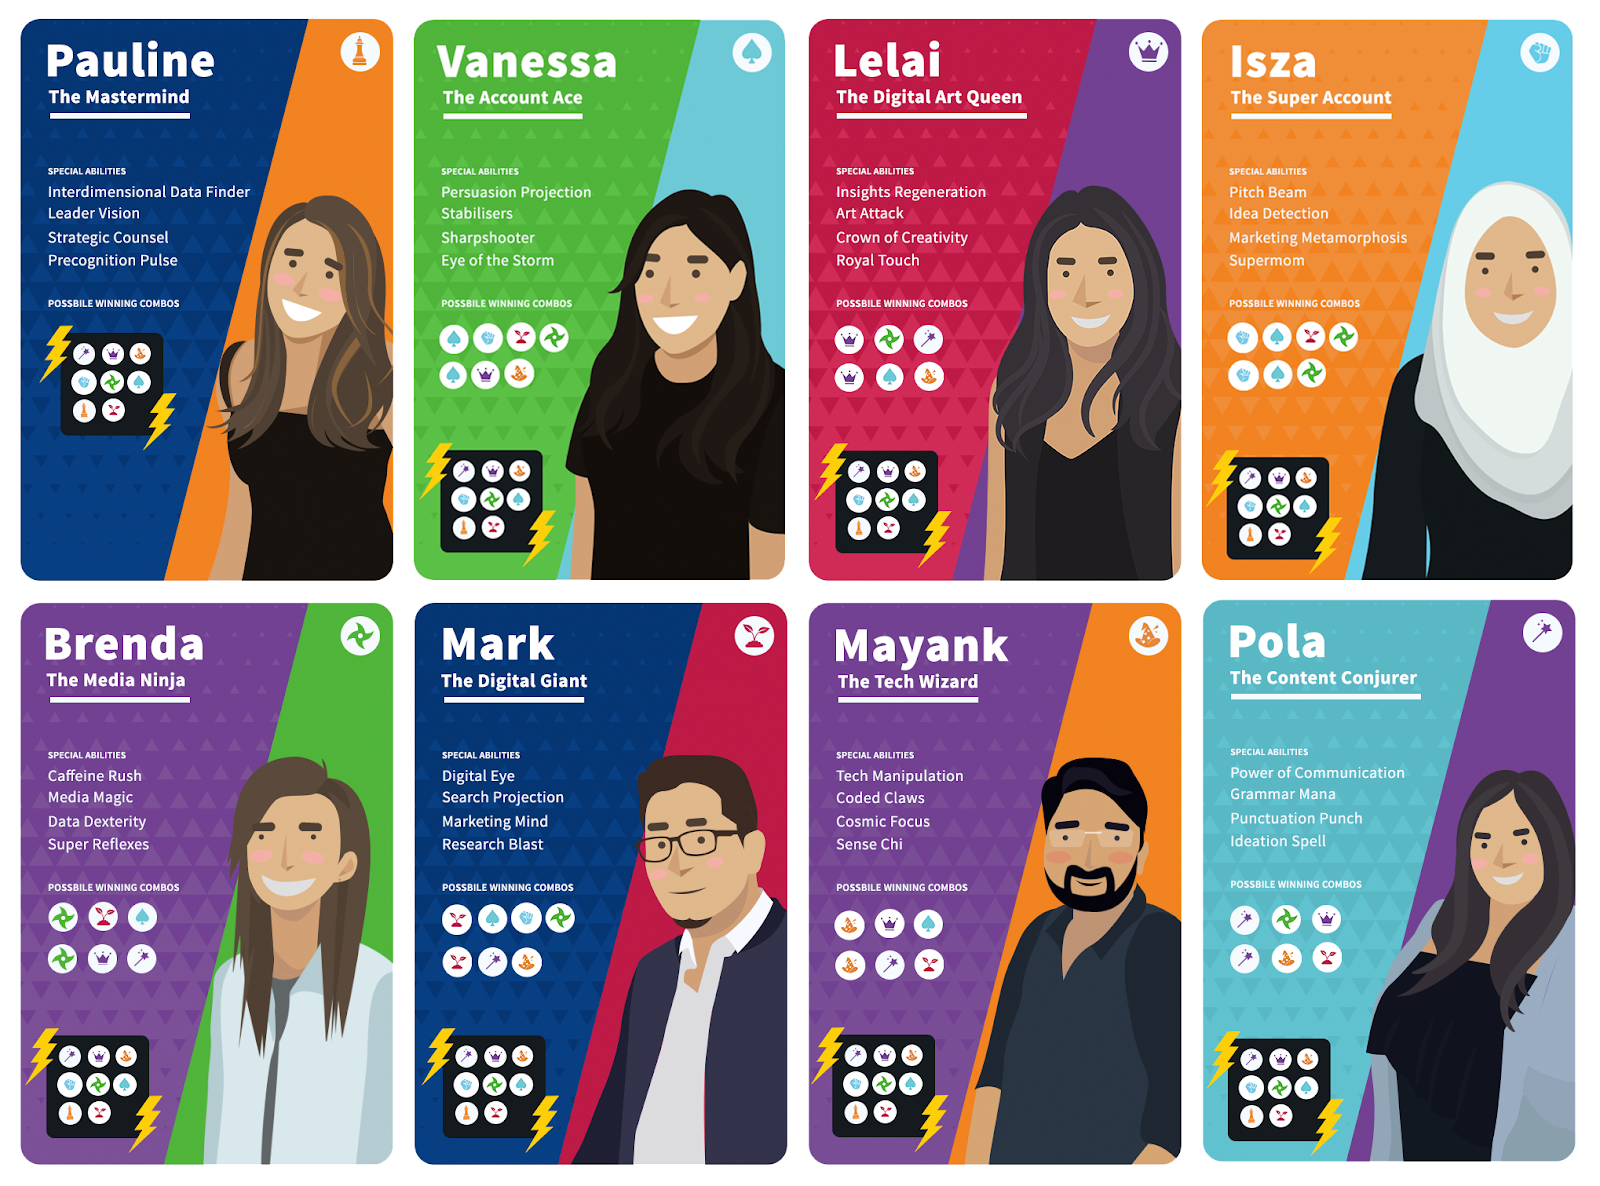 Flash cards featuring digital marketing agency teams